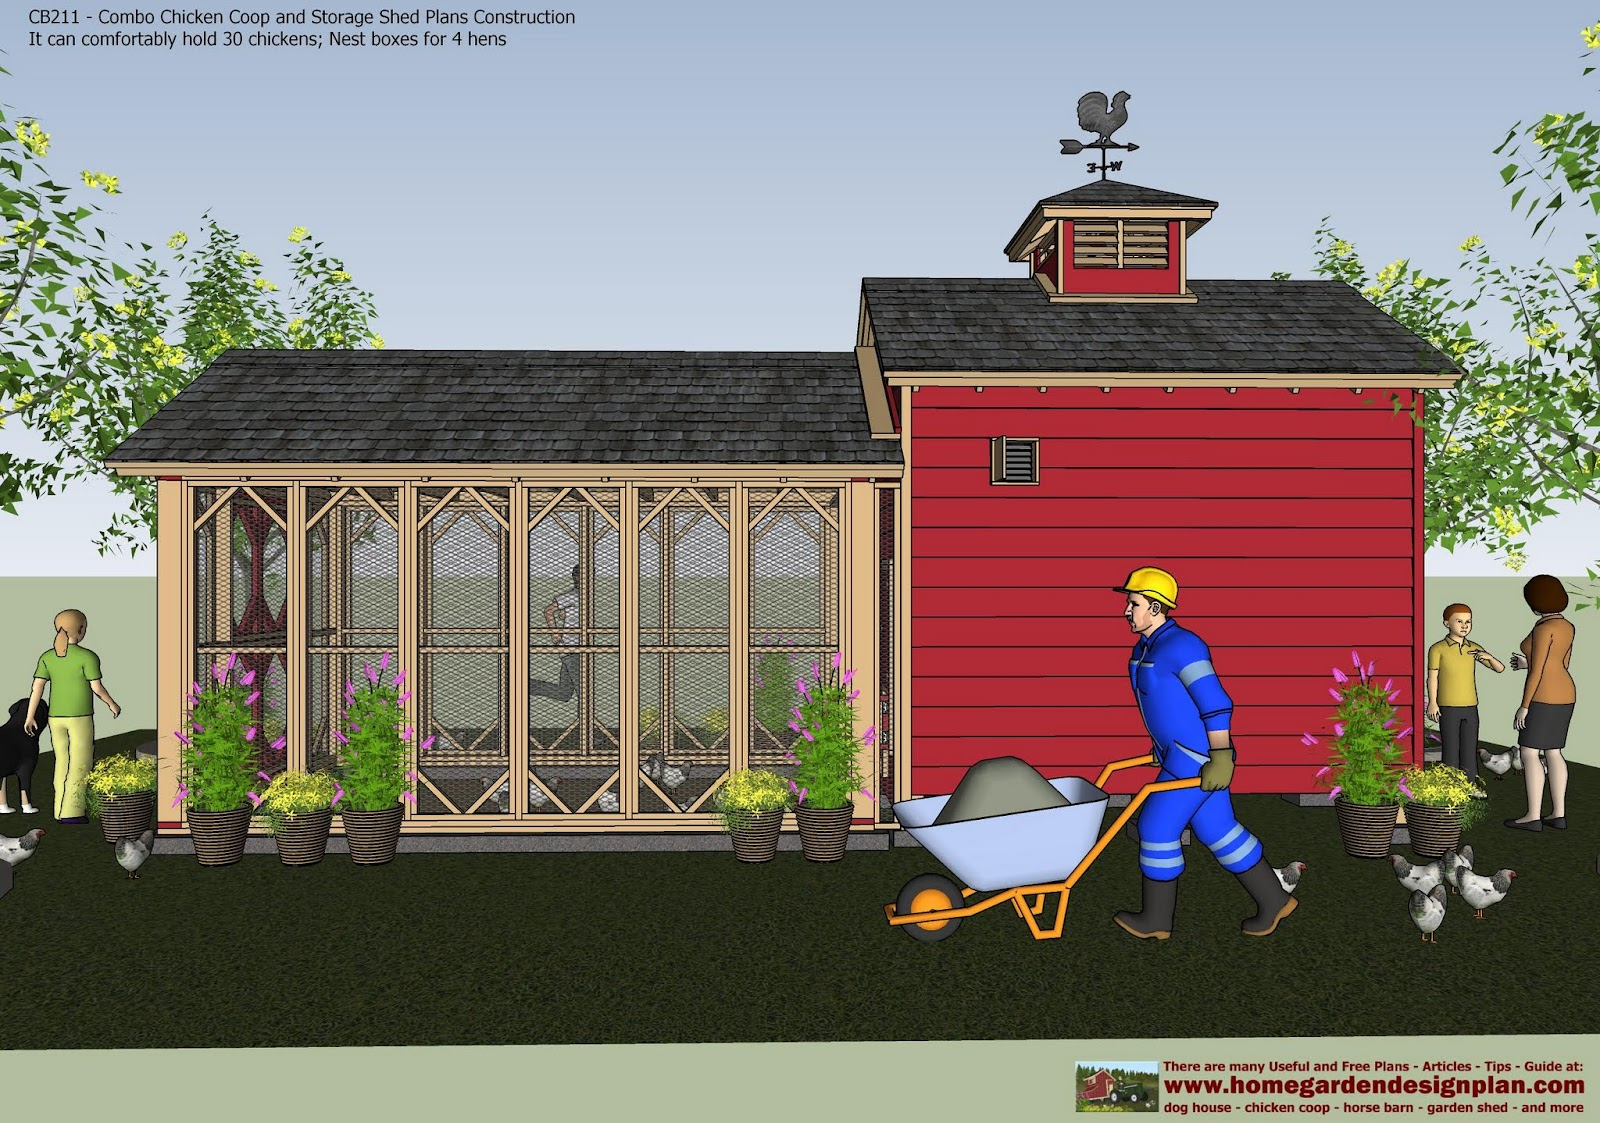 Home Garden Plans Combo Chicken Coop Garden Shed Plans